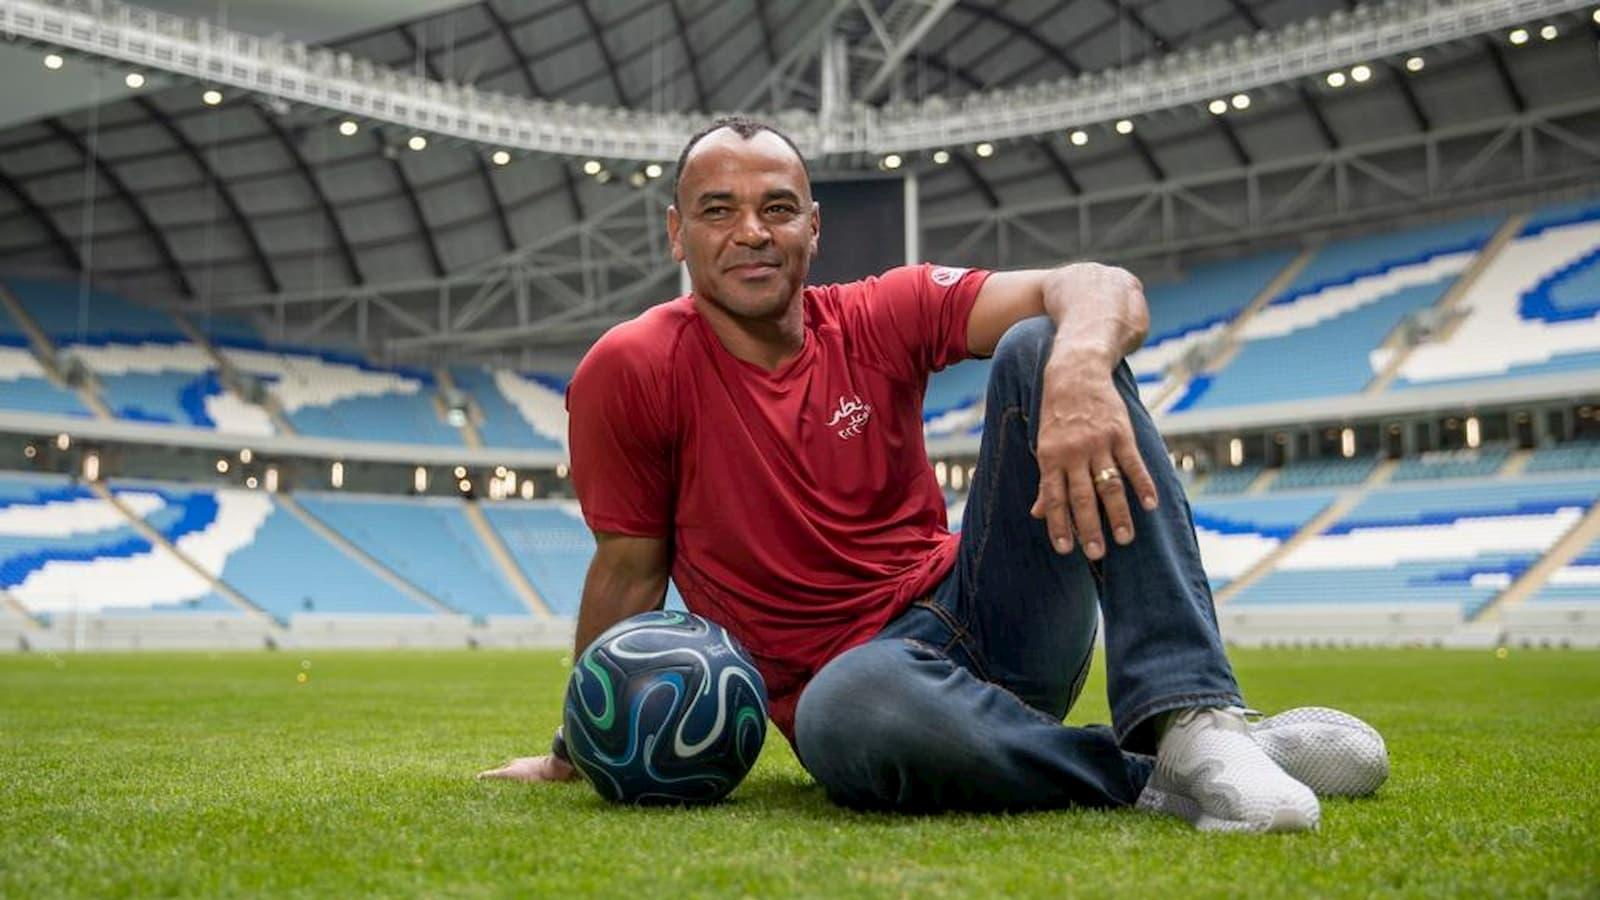 Every player will dream of winning the World Cup in Qatar: Cafu